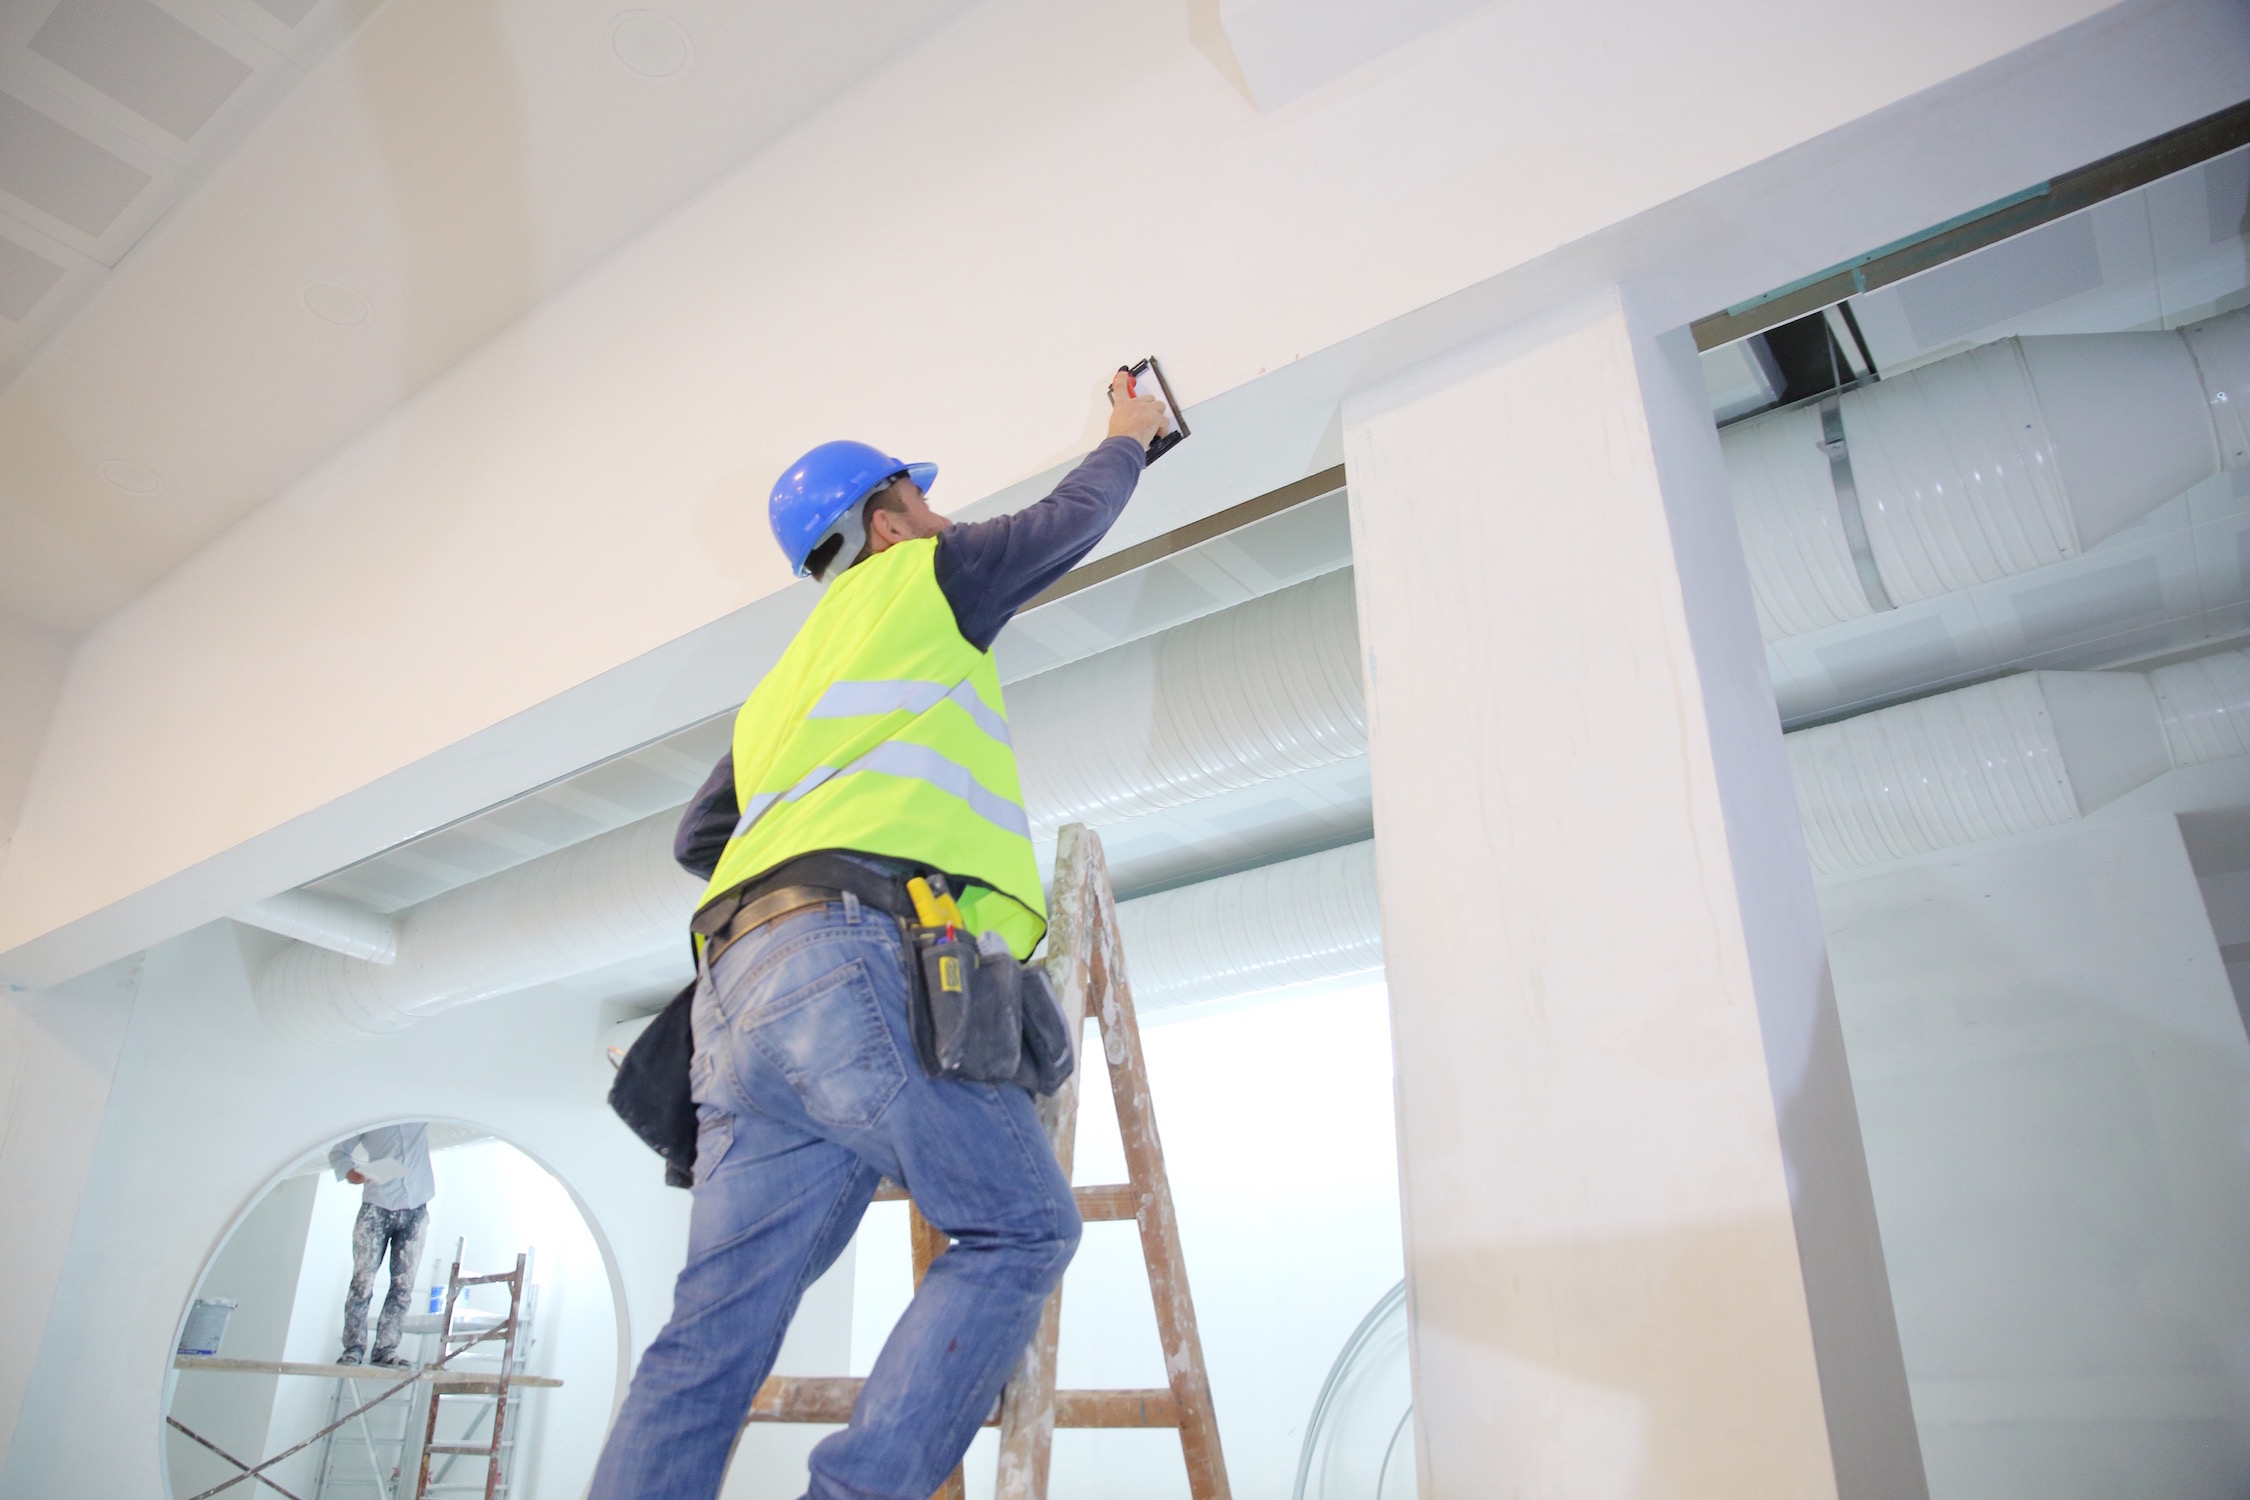 ONE STOP DRYWALL SHOP - Quality drywall, insulation & finishing products delivered where you need them. Our statement is simple,